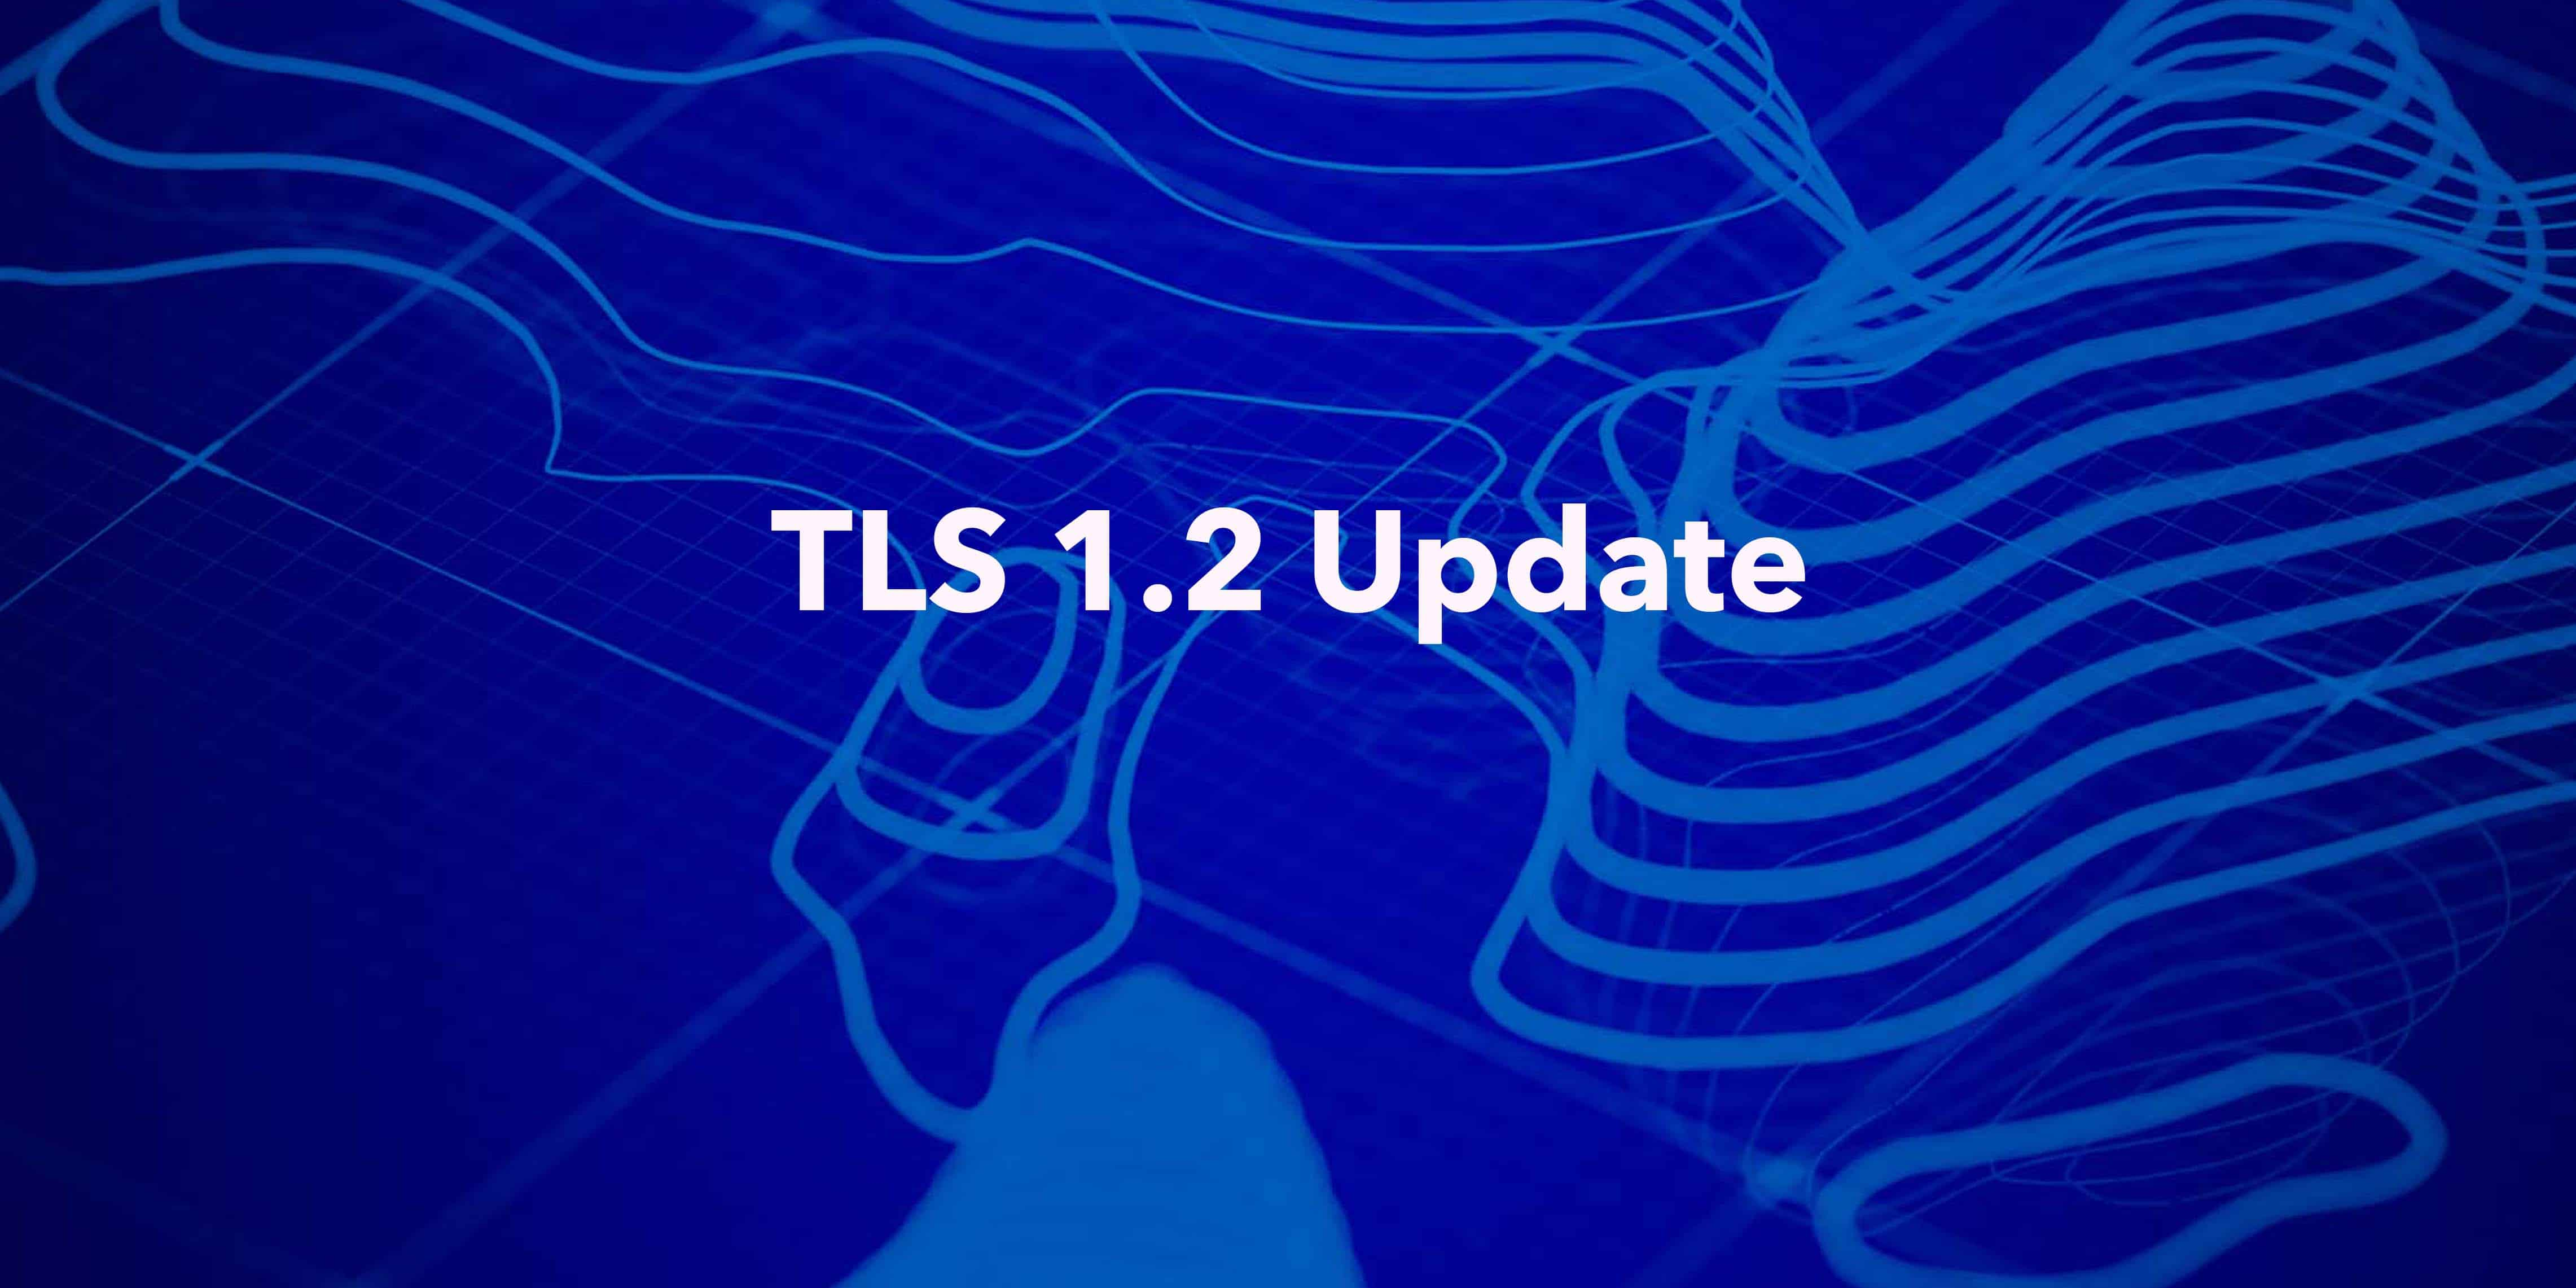 Feature image news TLS 1.2 Update